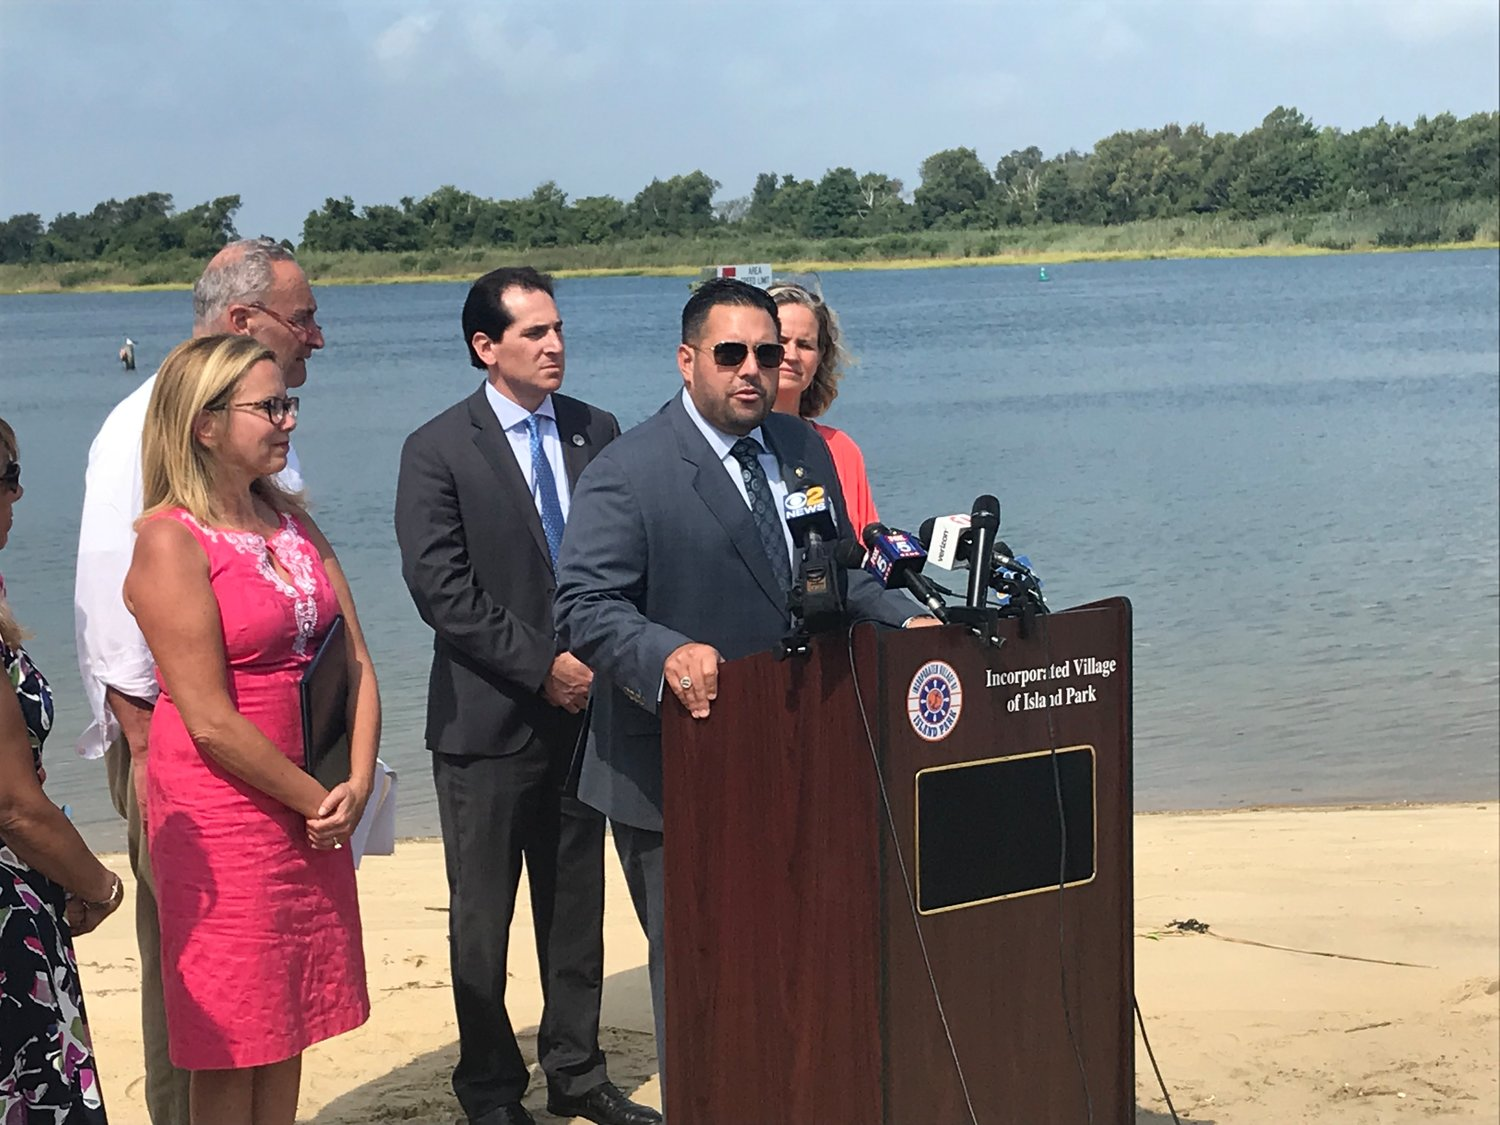 Hempstead Town Councilman Anthony D'Esposito, of Island Park, said he recalled serving as the Island Park Fire Department chief during Sandy, and said he hoped to never see such a storm devastate the area again.